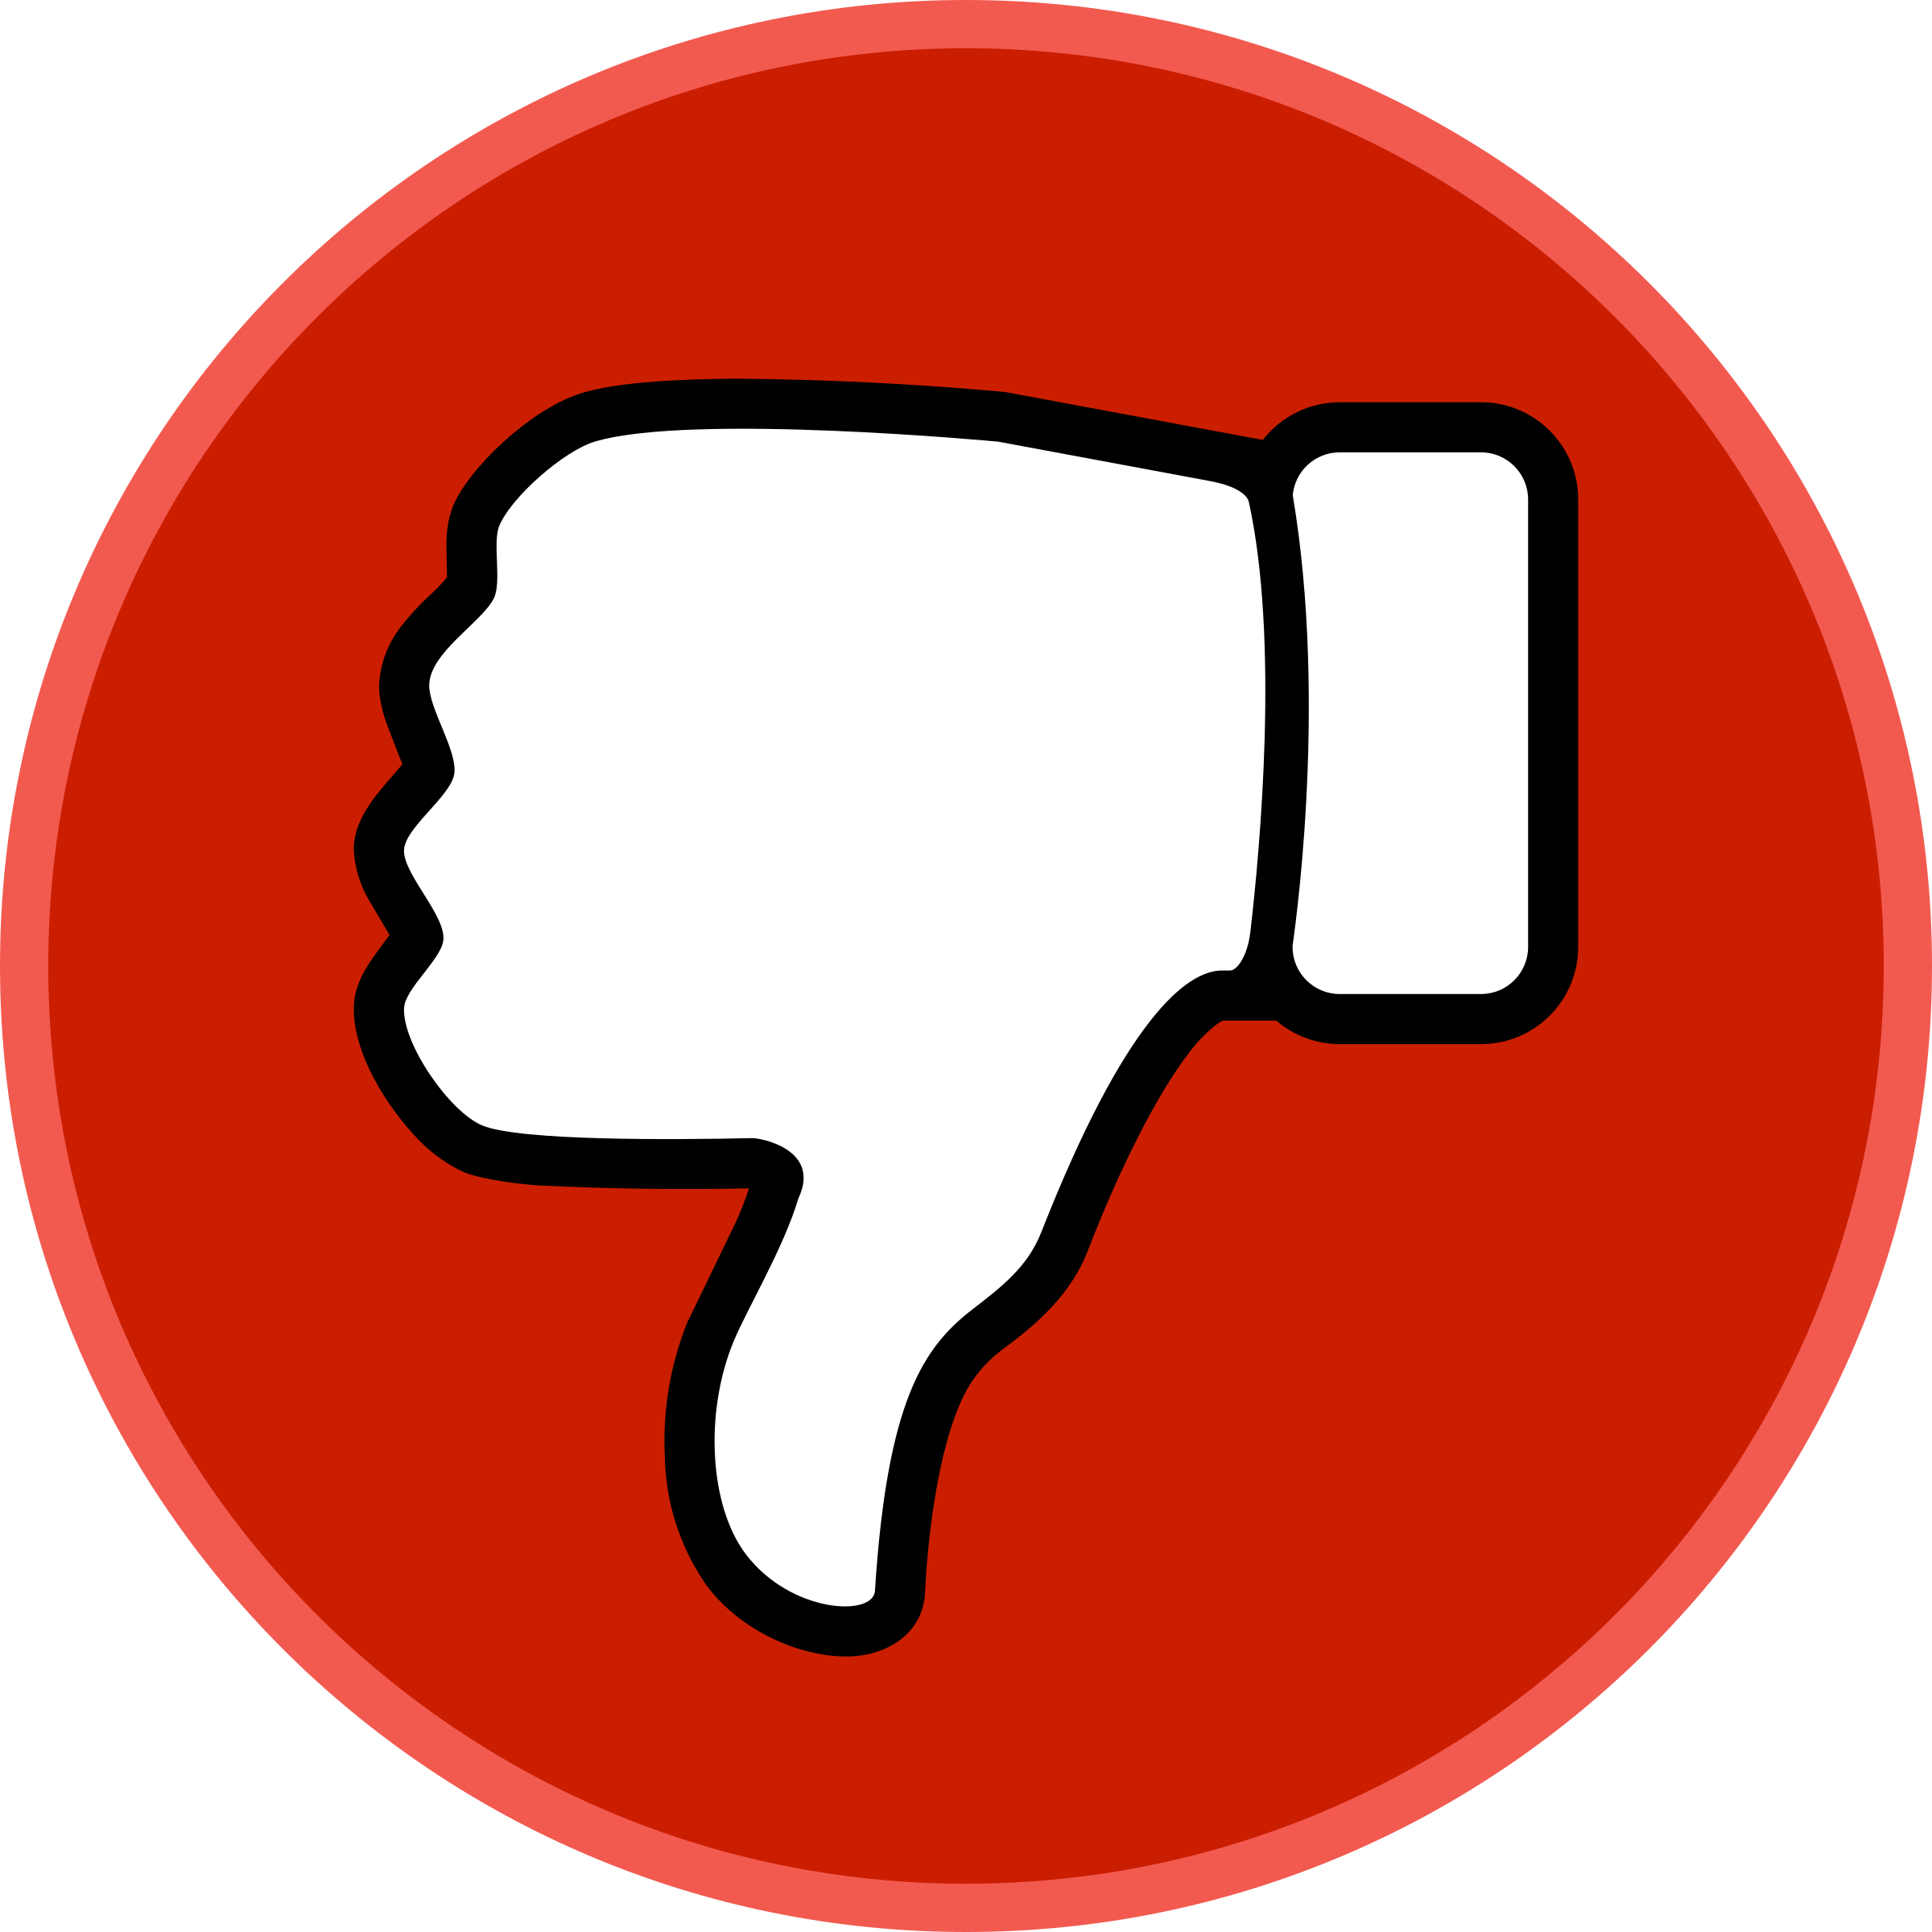 Youtube Dislike Vector Png image #45966